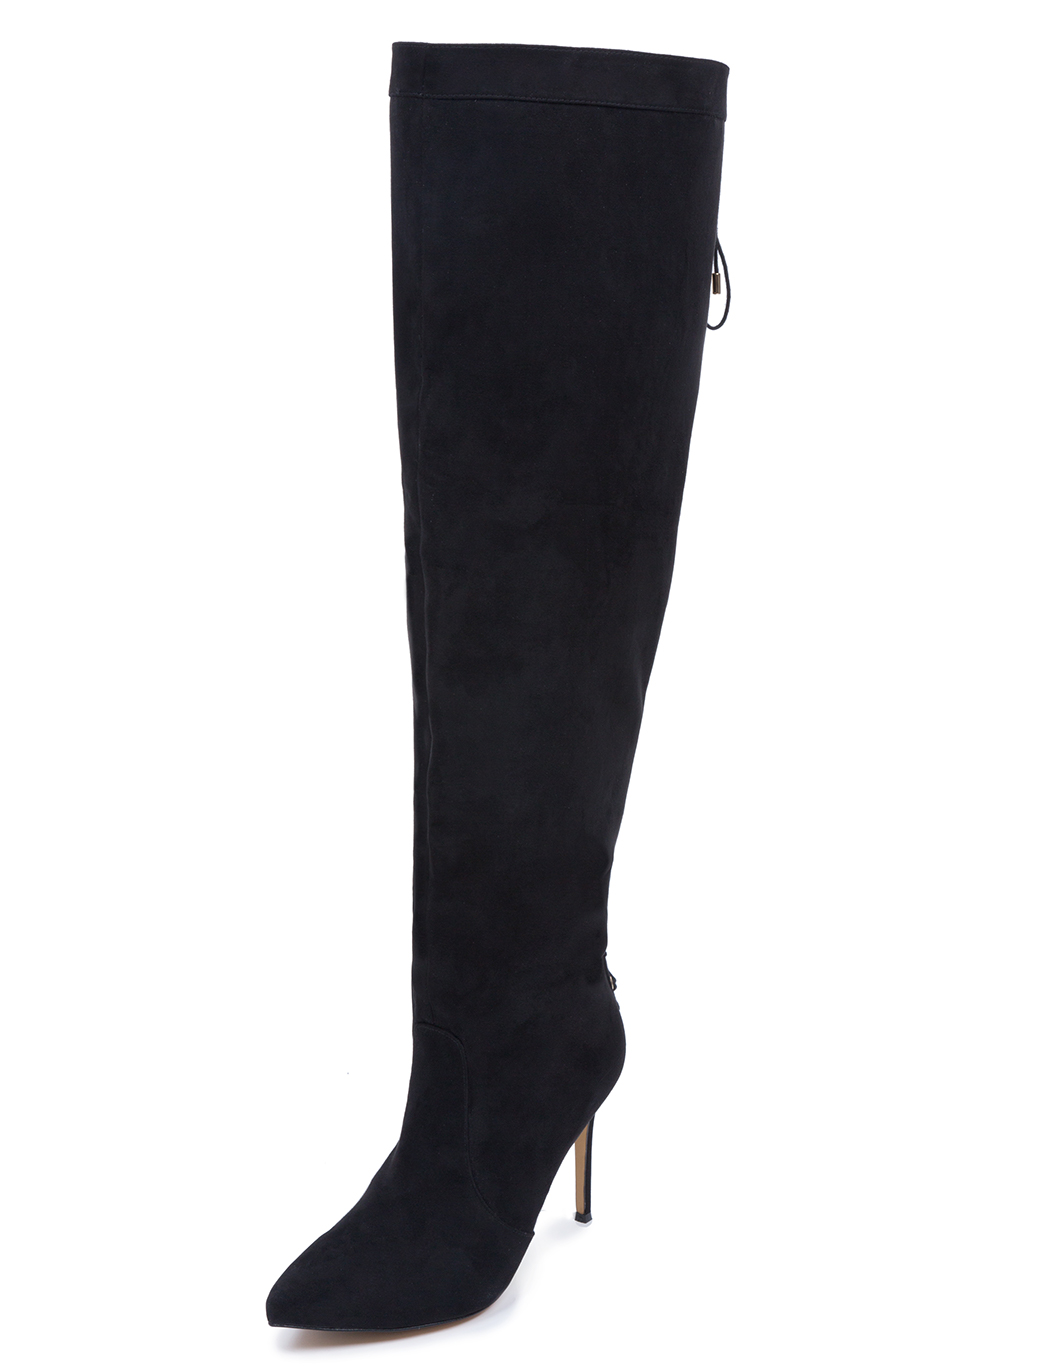 83c2d99f473 Over The Knee Lace Up Boot